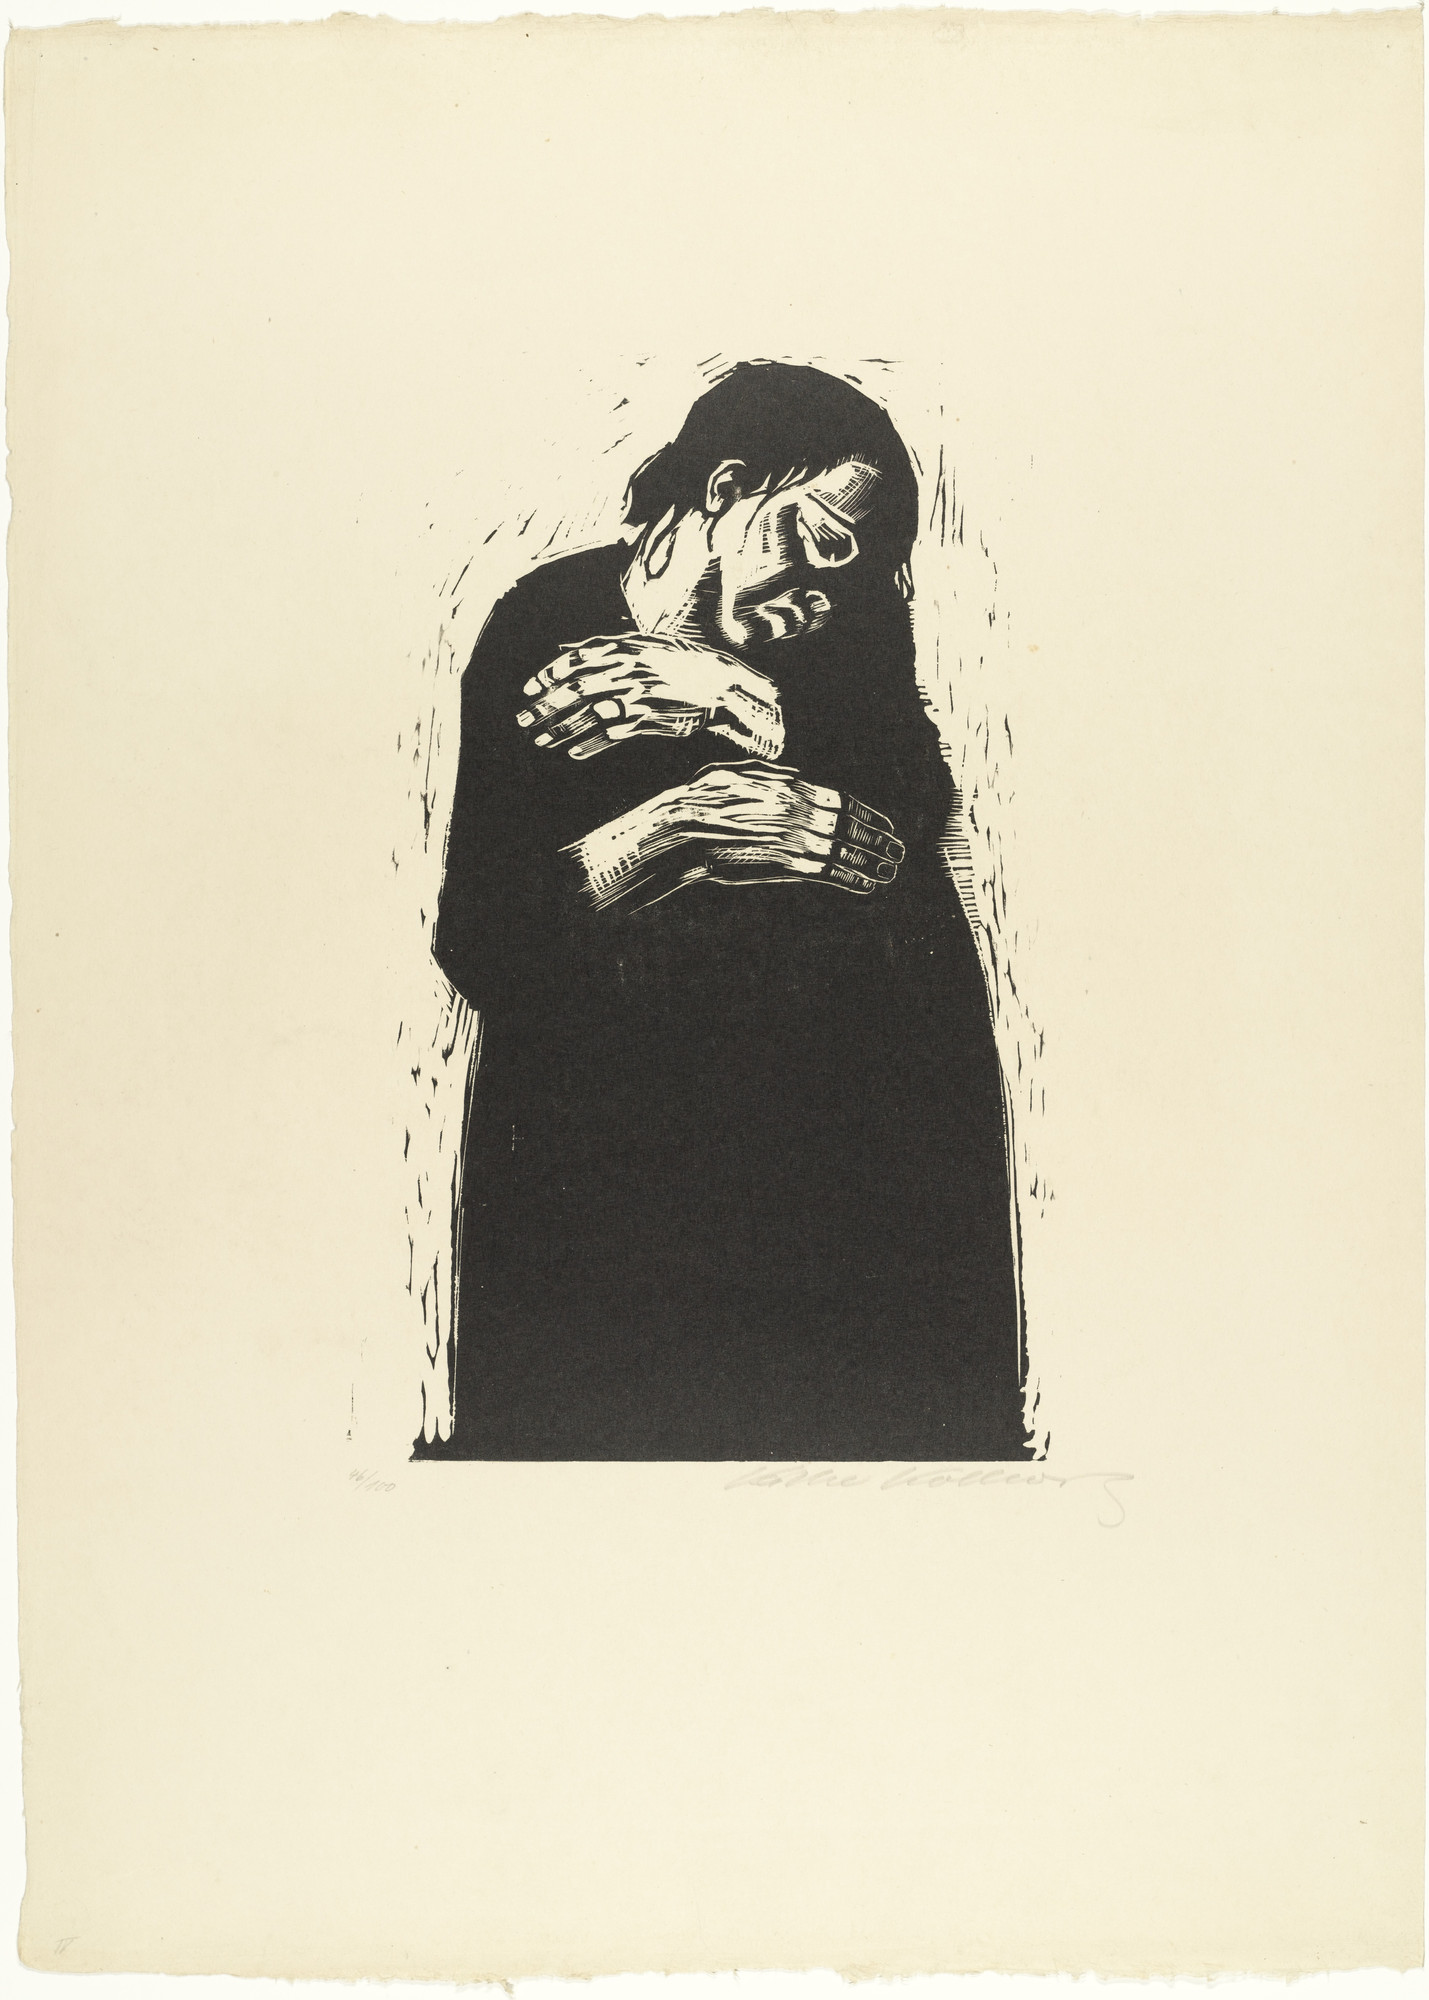 Käthe Kollwitz. The Widow I (Die Witwe I) from War (Krieg). 1921–22, published 1923